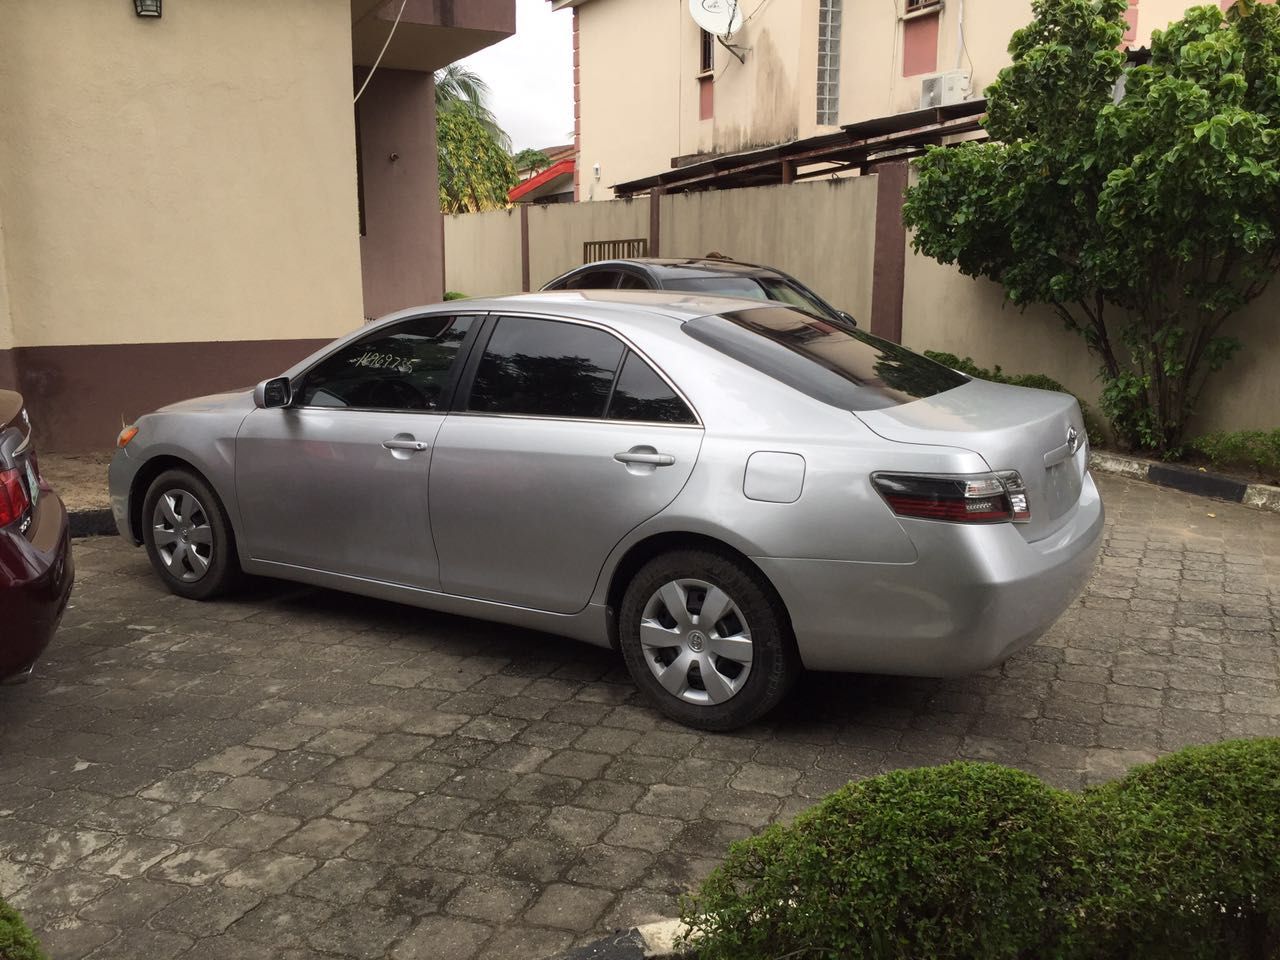 Very Clean, Unregistered Toyota Camry LE Silver Exterior Grey Fabric  Interior Tinted Windows Regular Stock Rims + Wheel Covers. Mileage   114,113